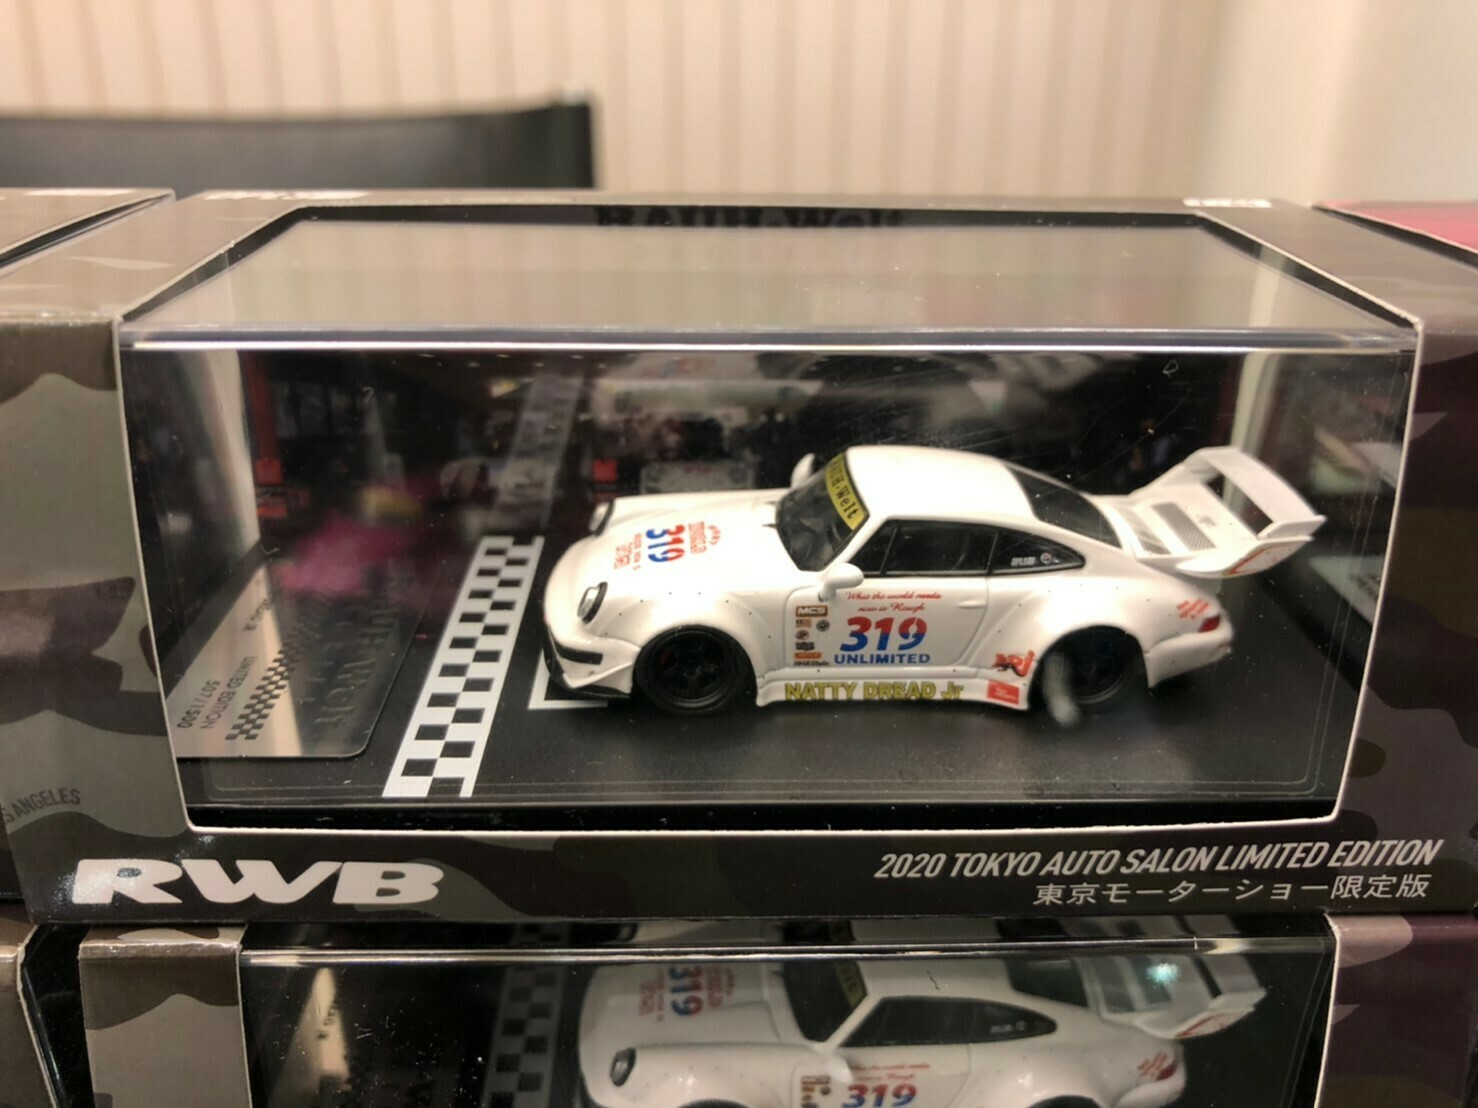 RWB 1/64 model car idlers (White) 2020 Tokyo Auto Salon Limited Edition